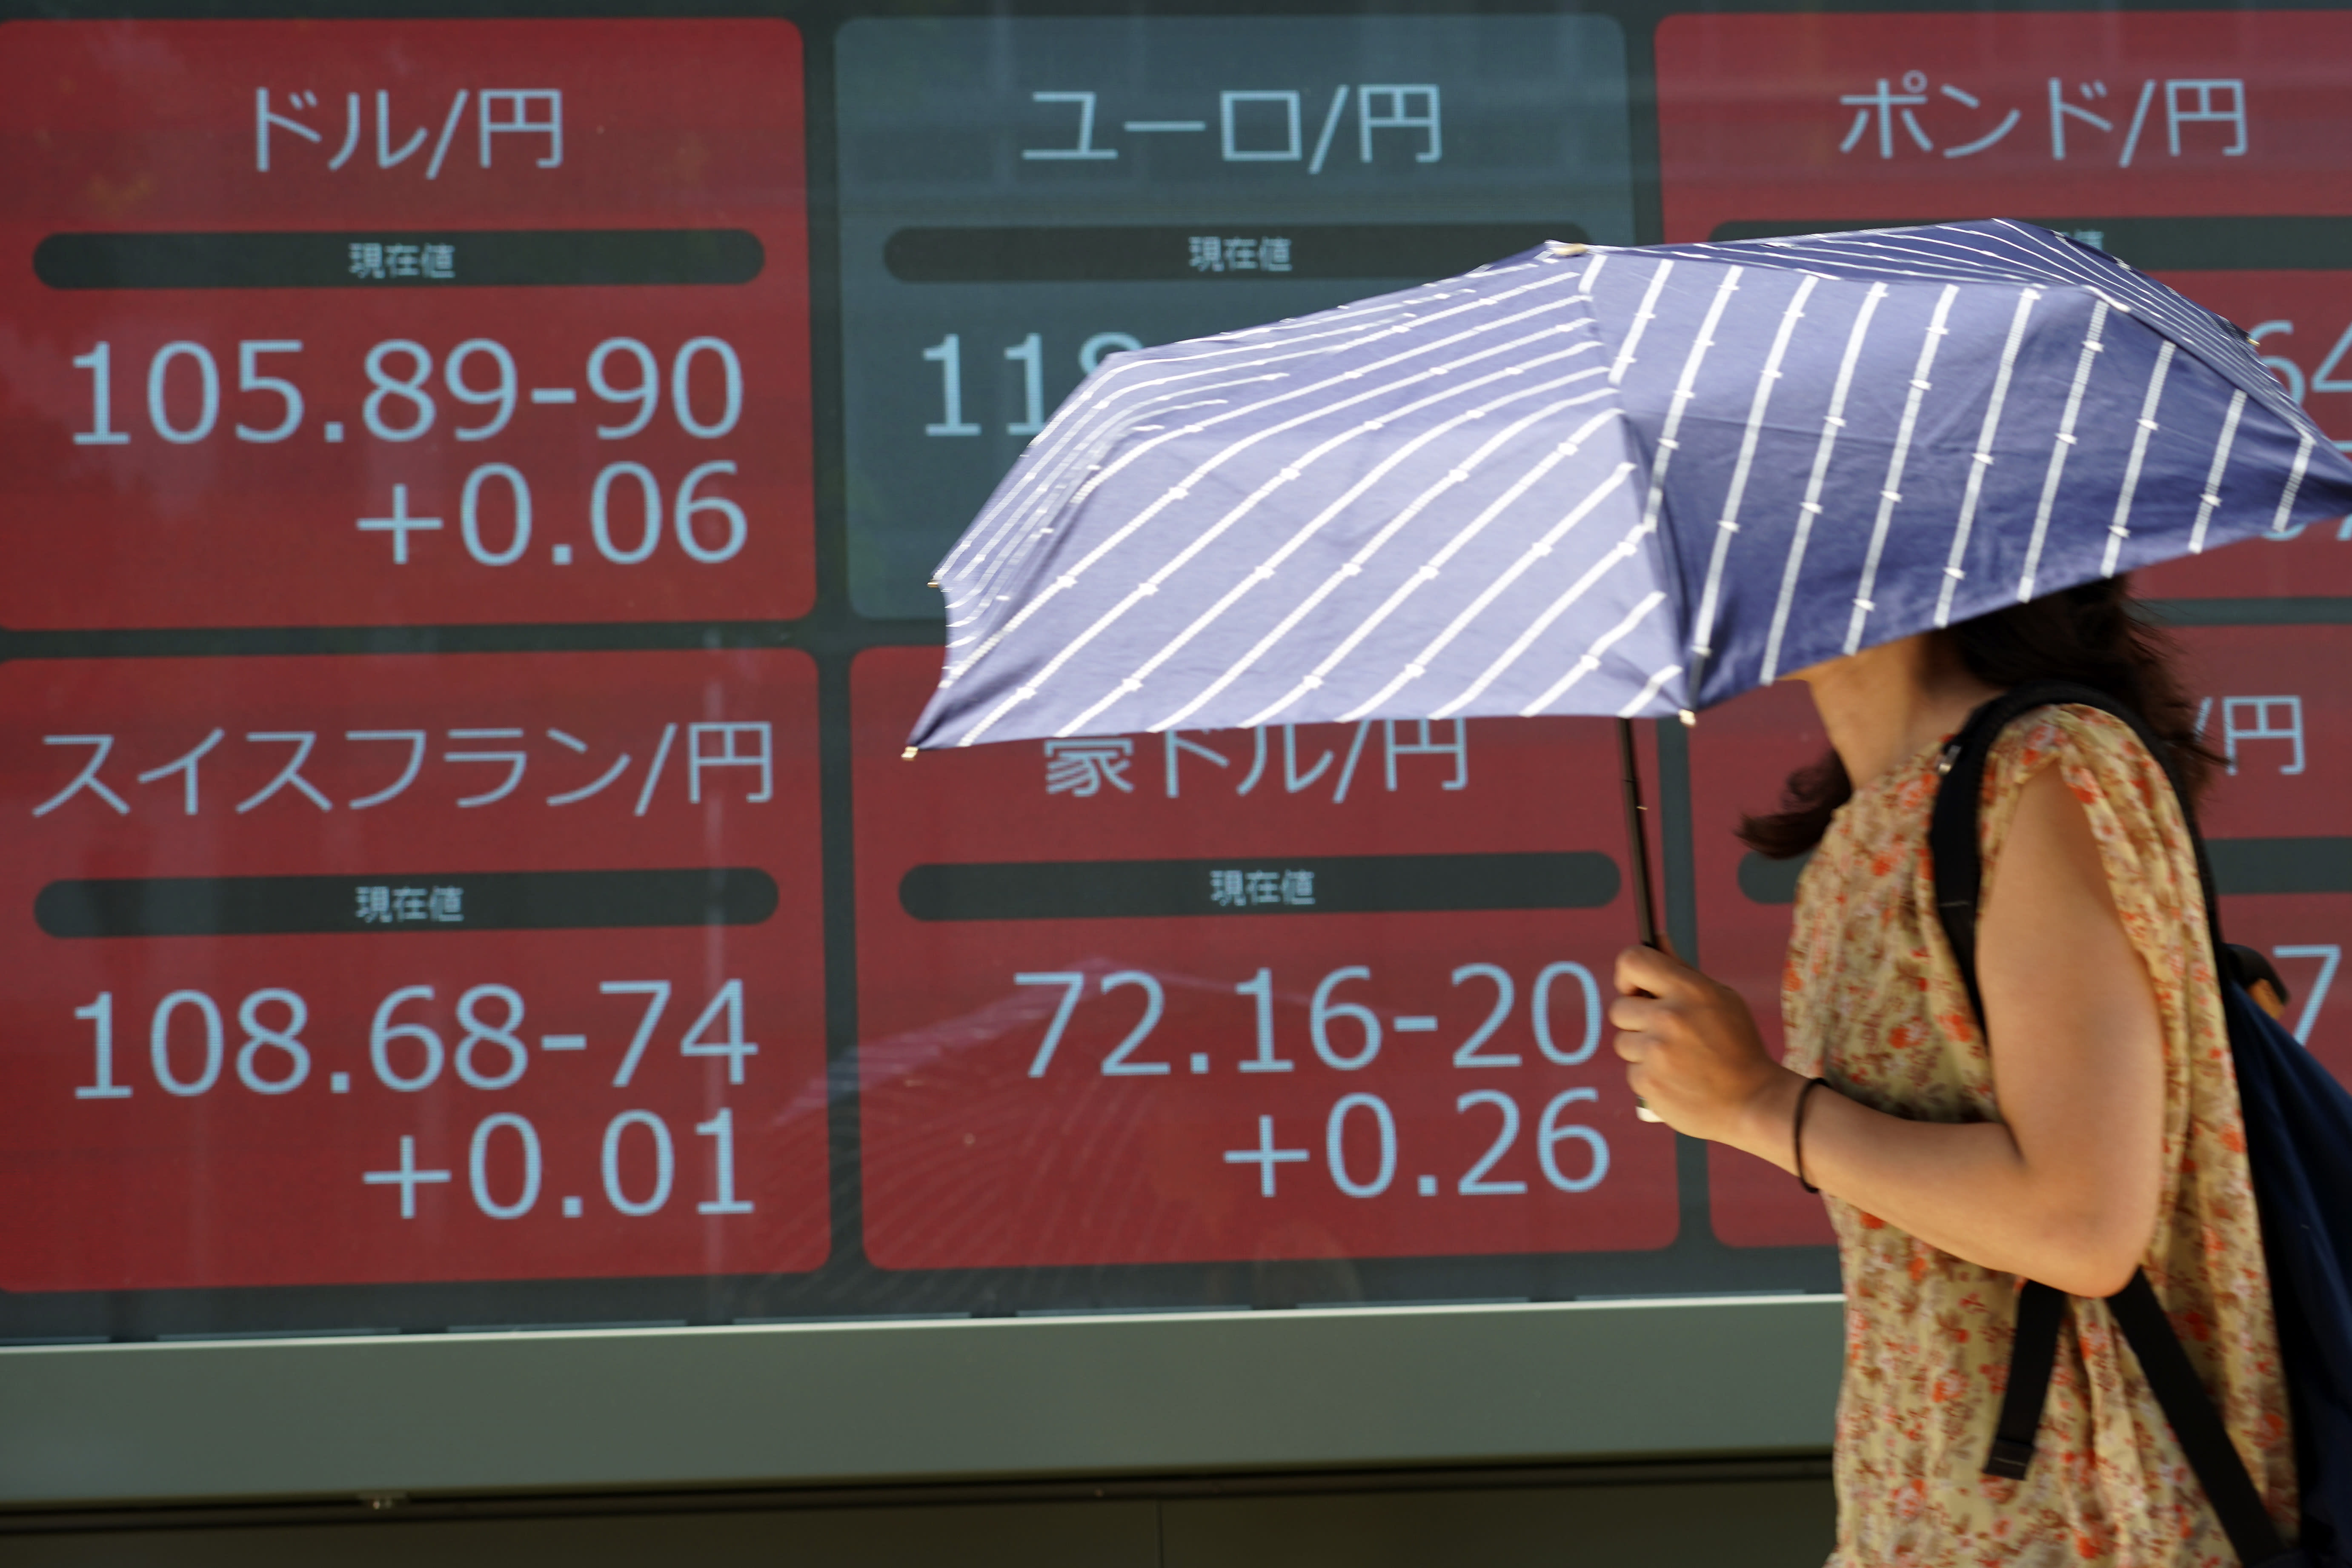 A woman walks past an electronic stock board showing the conversion rates of international currencies to Japanese yen at a securities firm in Tokyo Friday, Aug. 9, 2019. Asian shares rose Friday as investors bought back stocks following gains on Wall Street, although worries about a trade dispute between the U.S. and China remained. (AP Photo/Eugene Hoshiko)